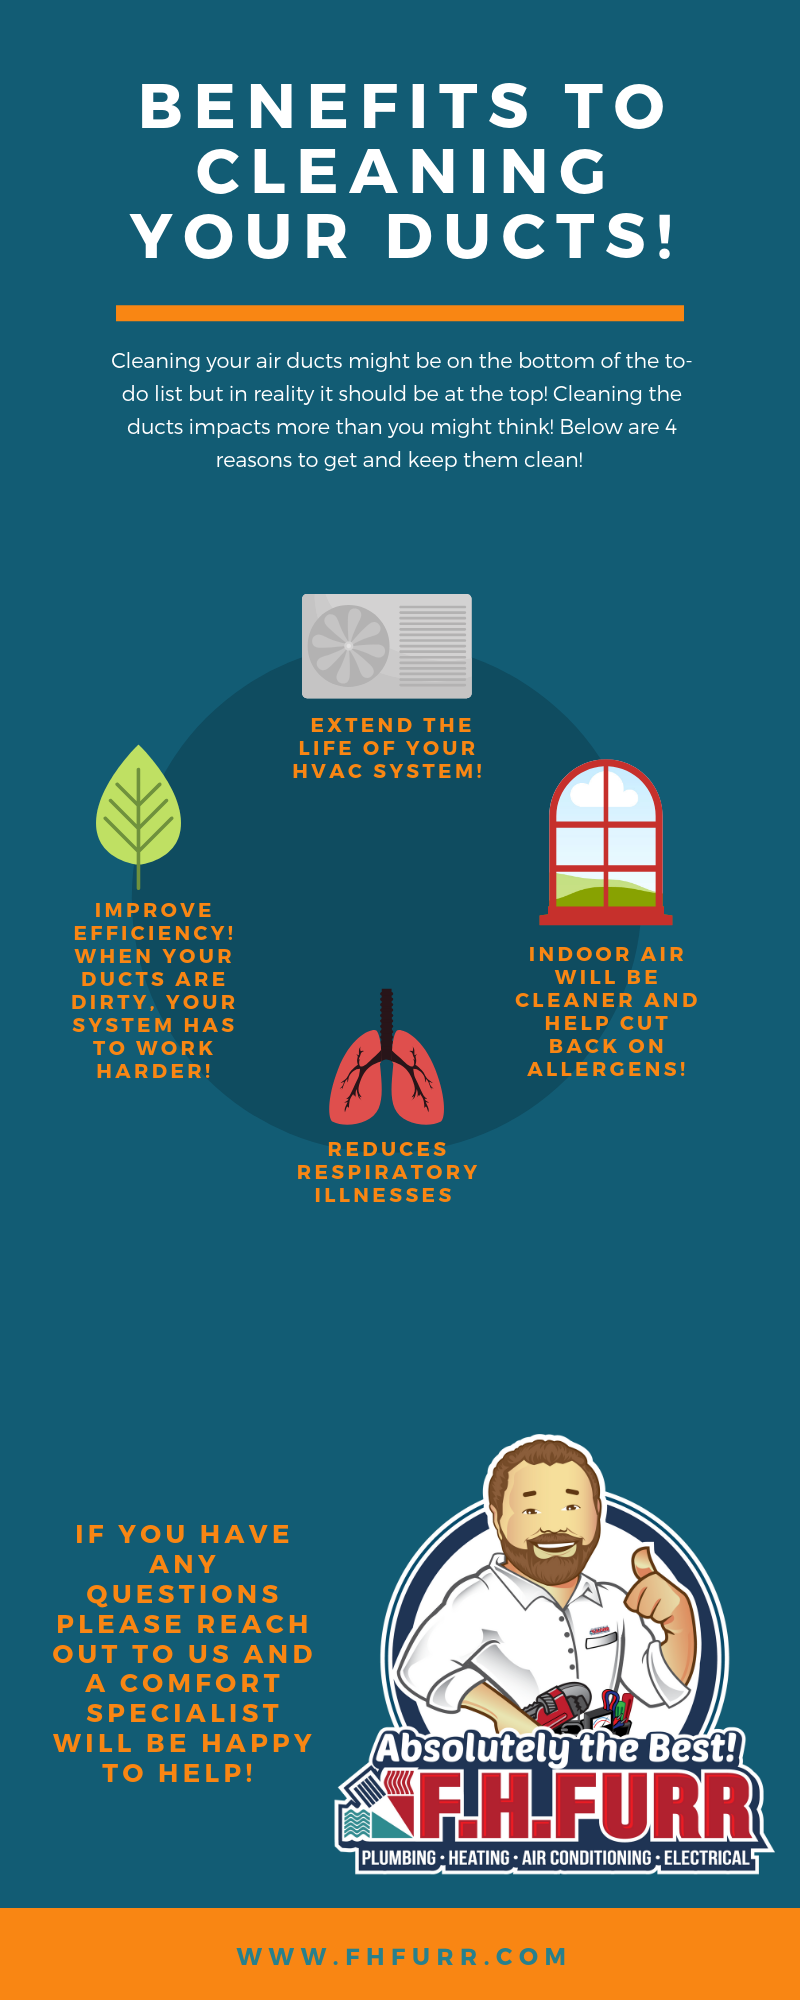 benefits to cleaning your ducts!